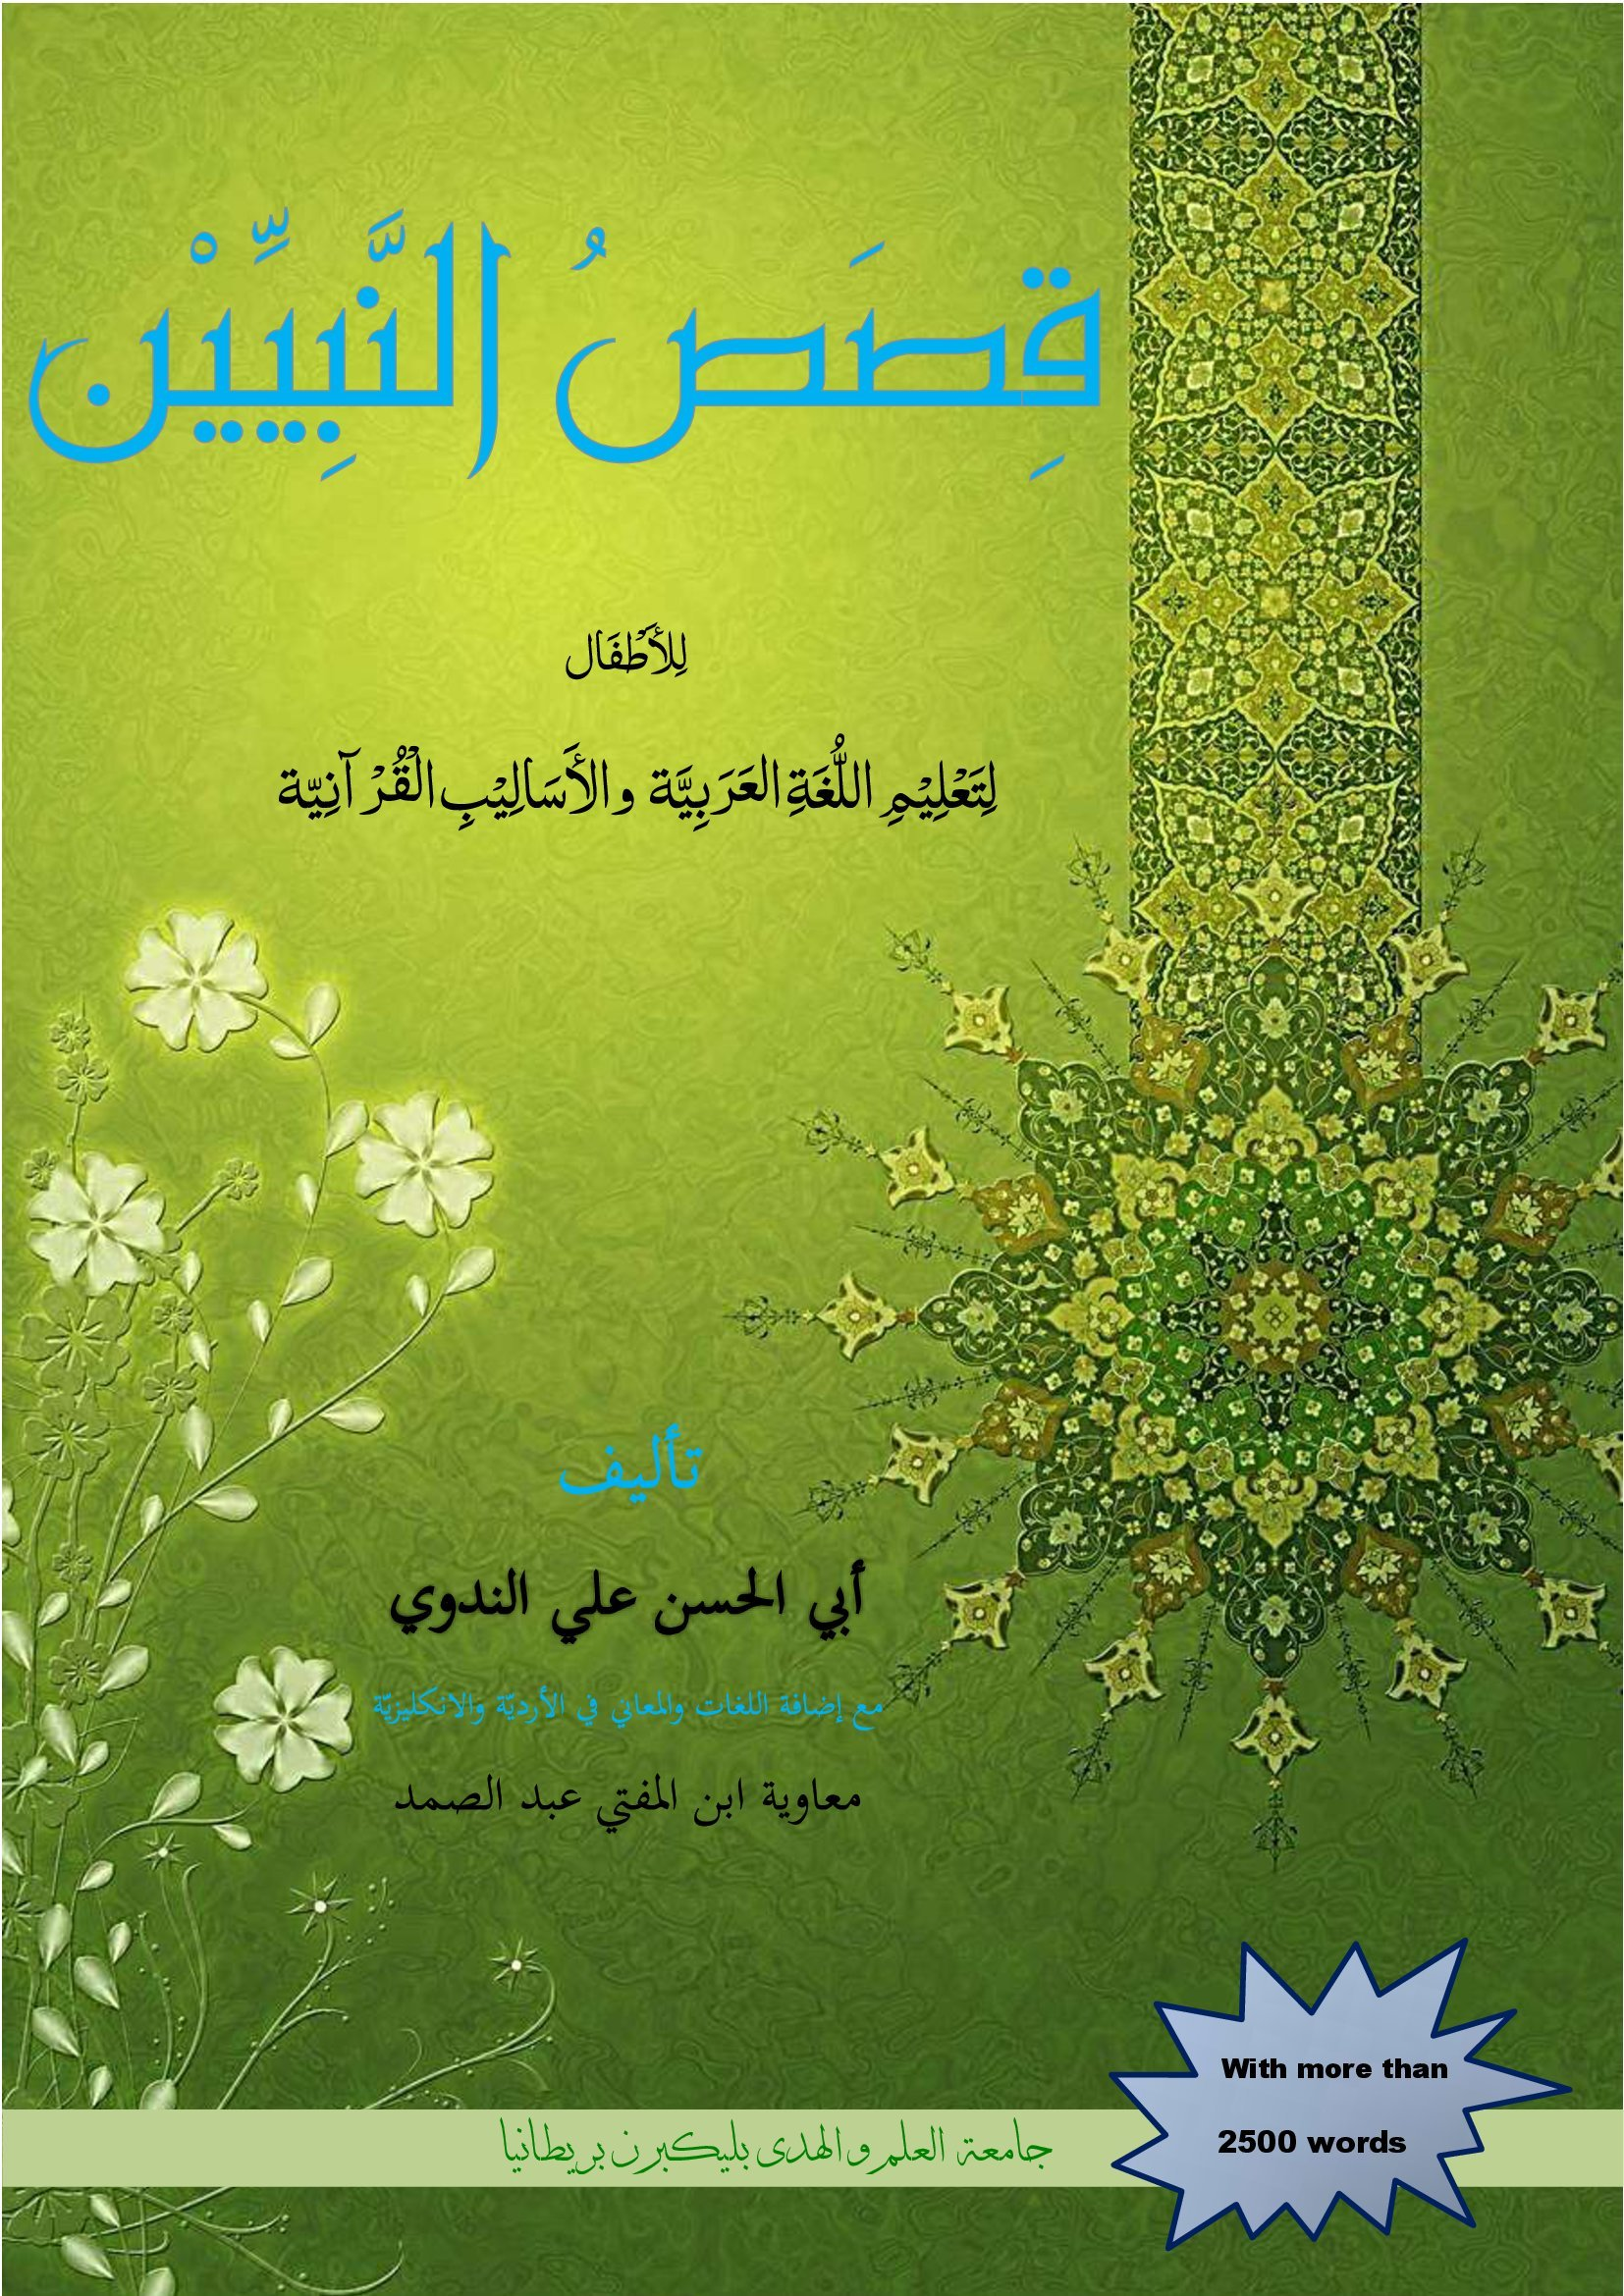 Qisas an nabiyeen 1 stories of the prophets arabic edition qisas an nabiyeen 1 stories of the prophets arabic edition ahmed muawiyah 9780955697357 amazon books fandeluxe Image collections